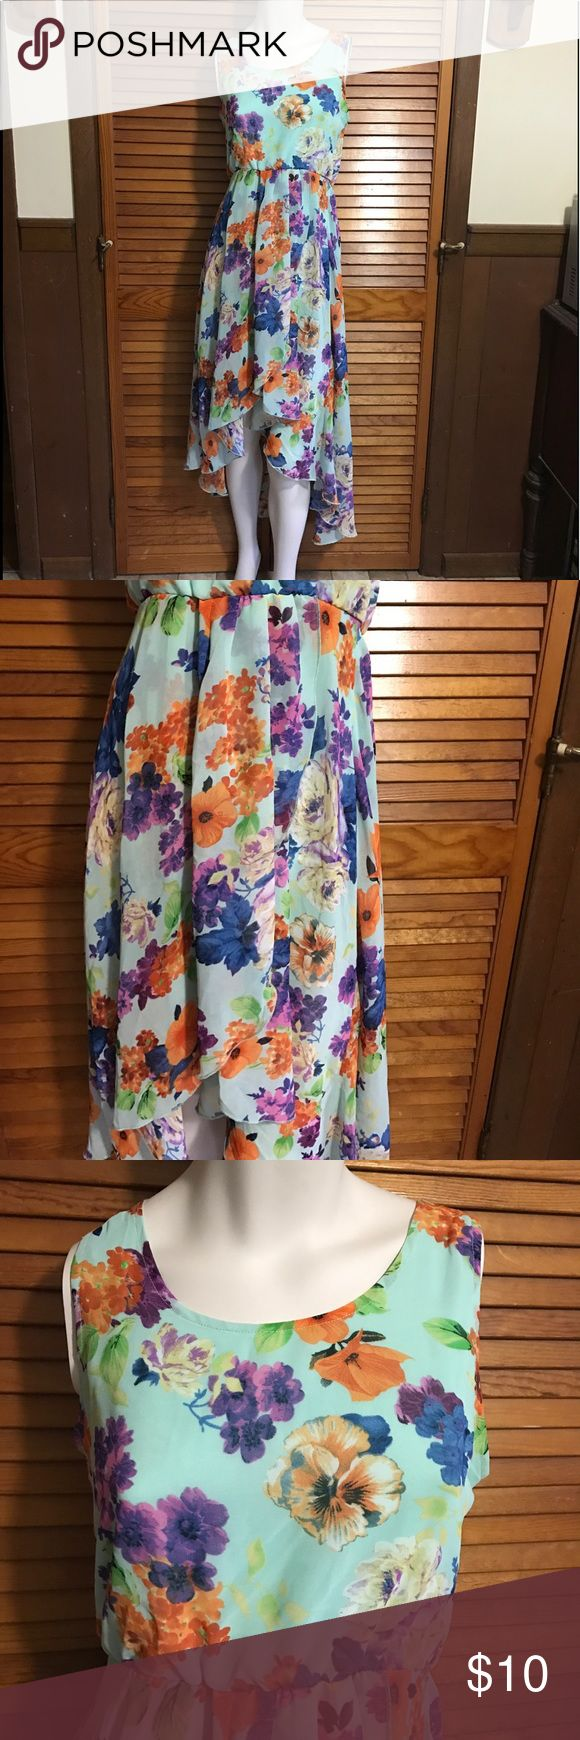 High low ruffled sleeveless floral dress medium Women's high low sleeveless ruffled dress size medium. Excellent used condition- no rips/stains/holes etc. whispers Dresses High Low